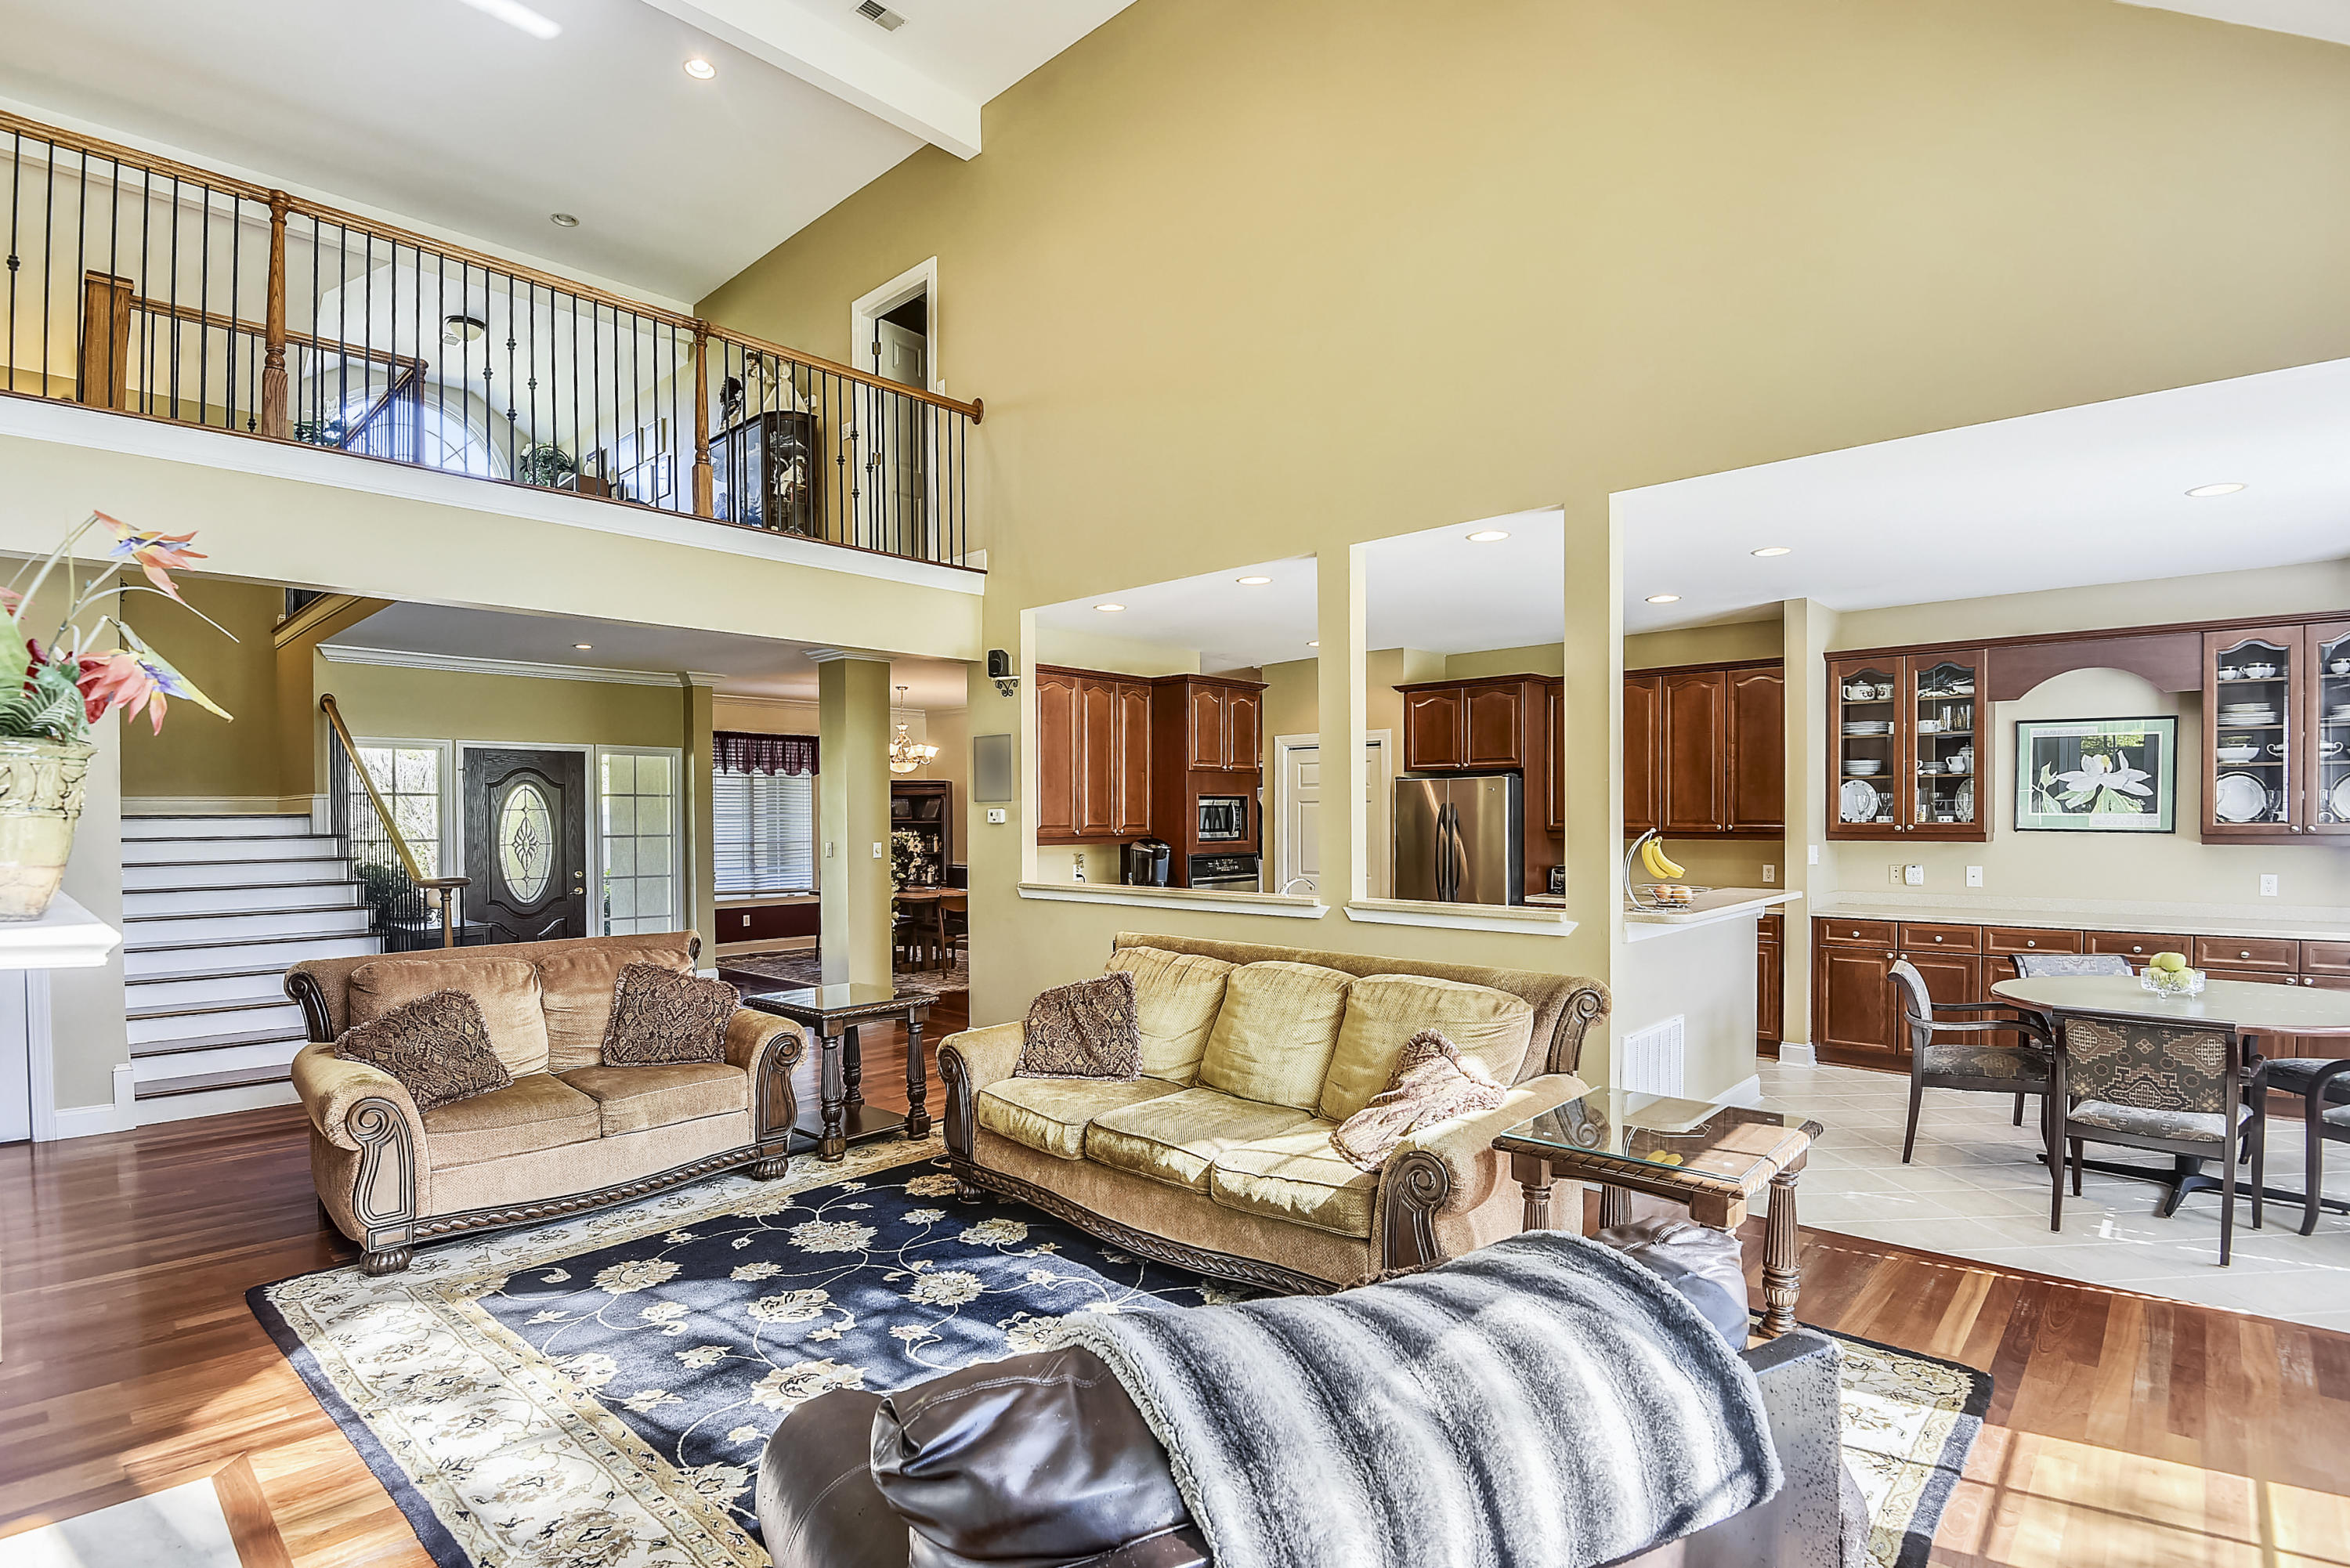 Coosaw Creek Country Club Homes For Sale - 8855 Fairway Woods, North Charleston, SC - 52